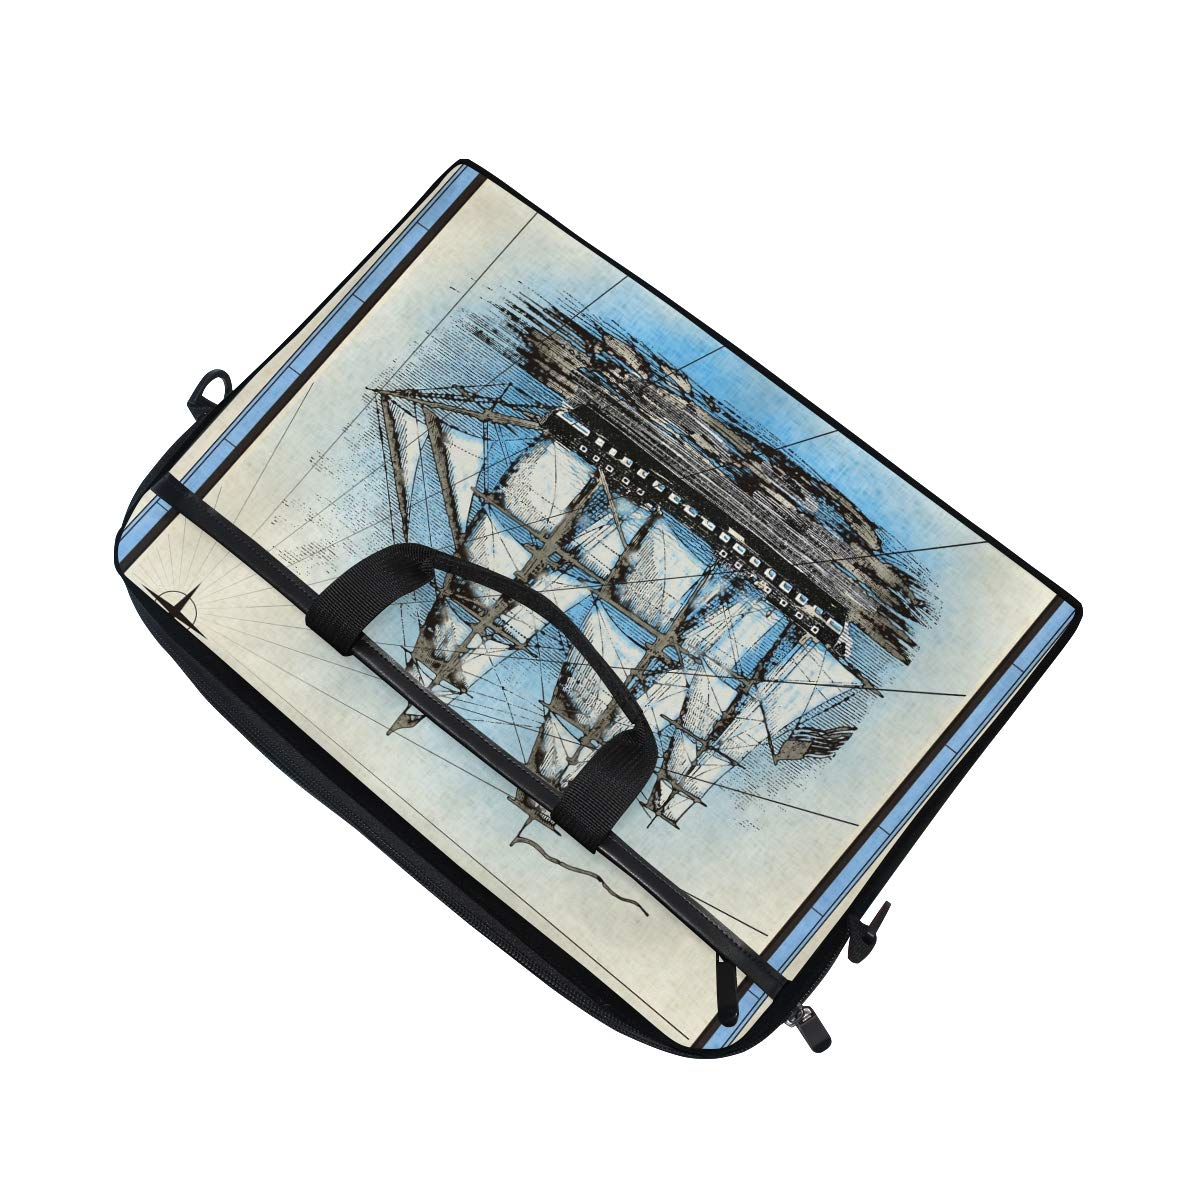 Handbags Ship Mens and Womens Computer Bags Shoulder Bags Suitable for 15 Inch Computers Briefcases